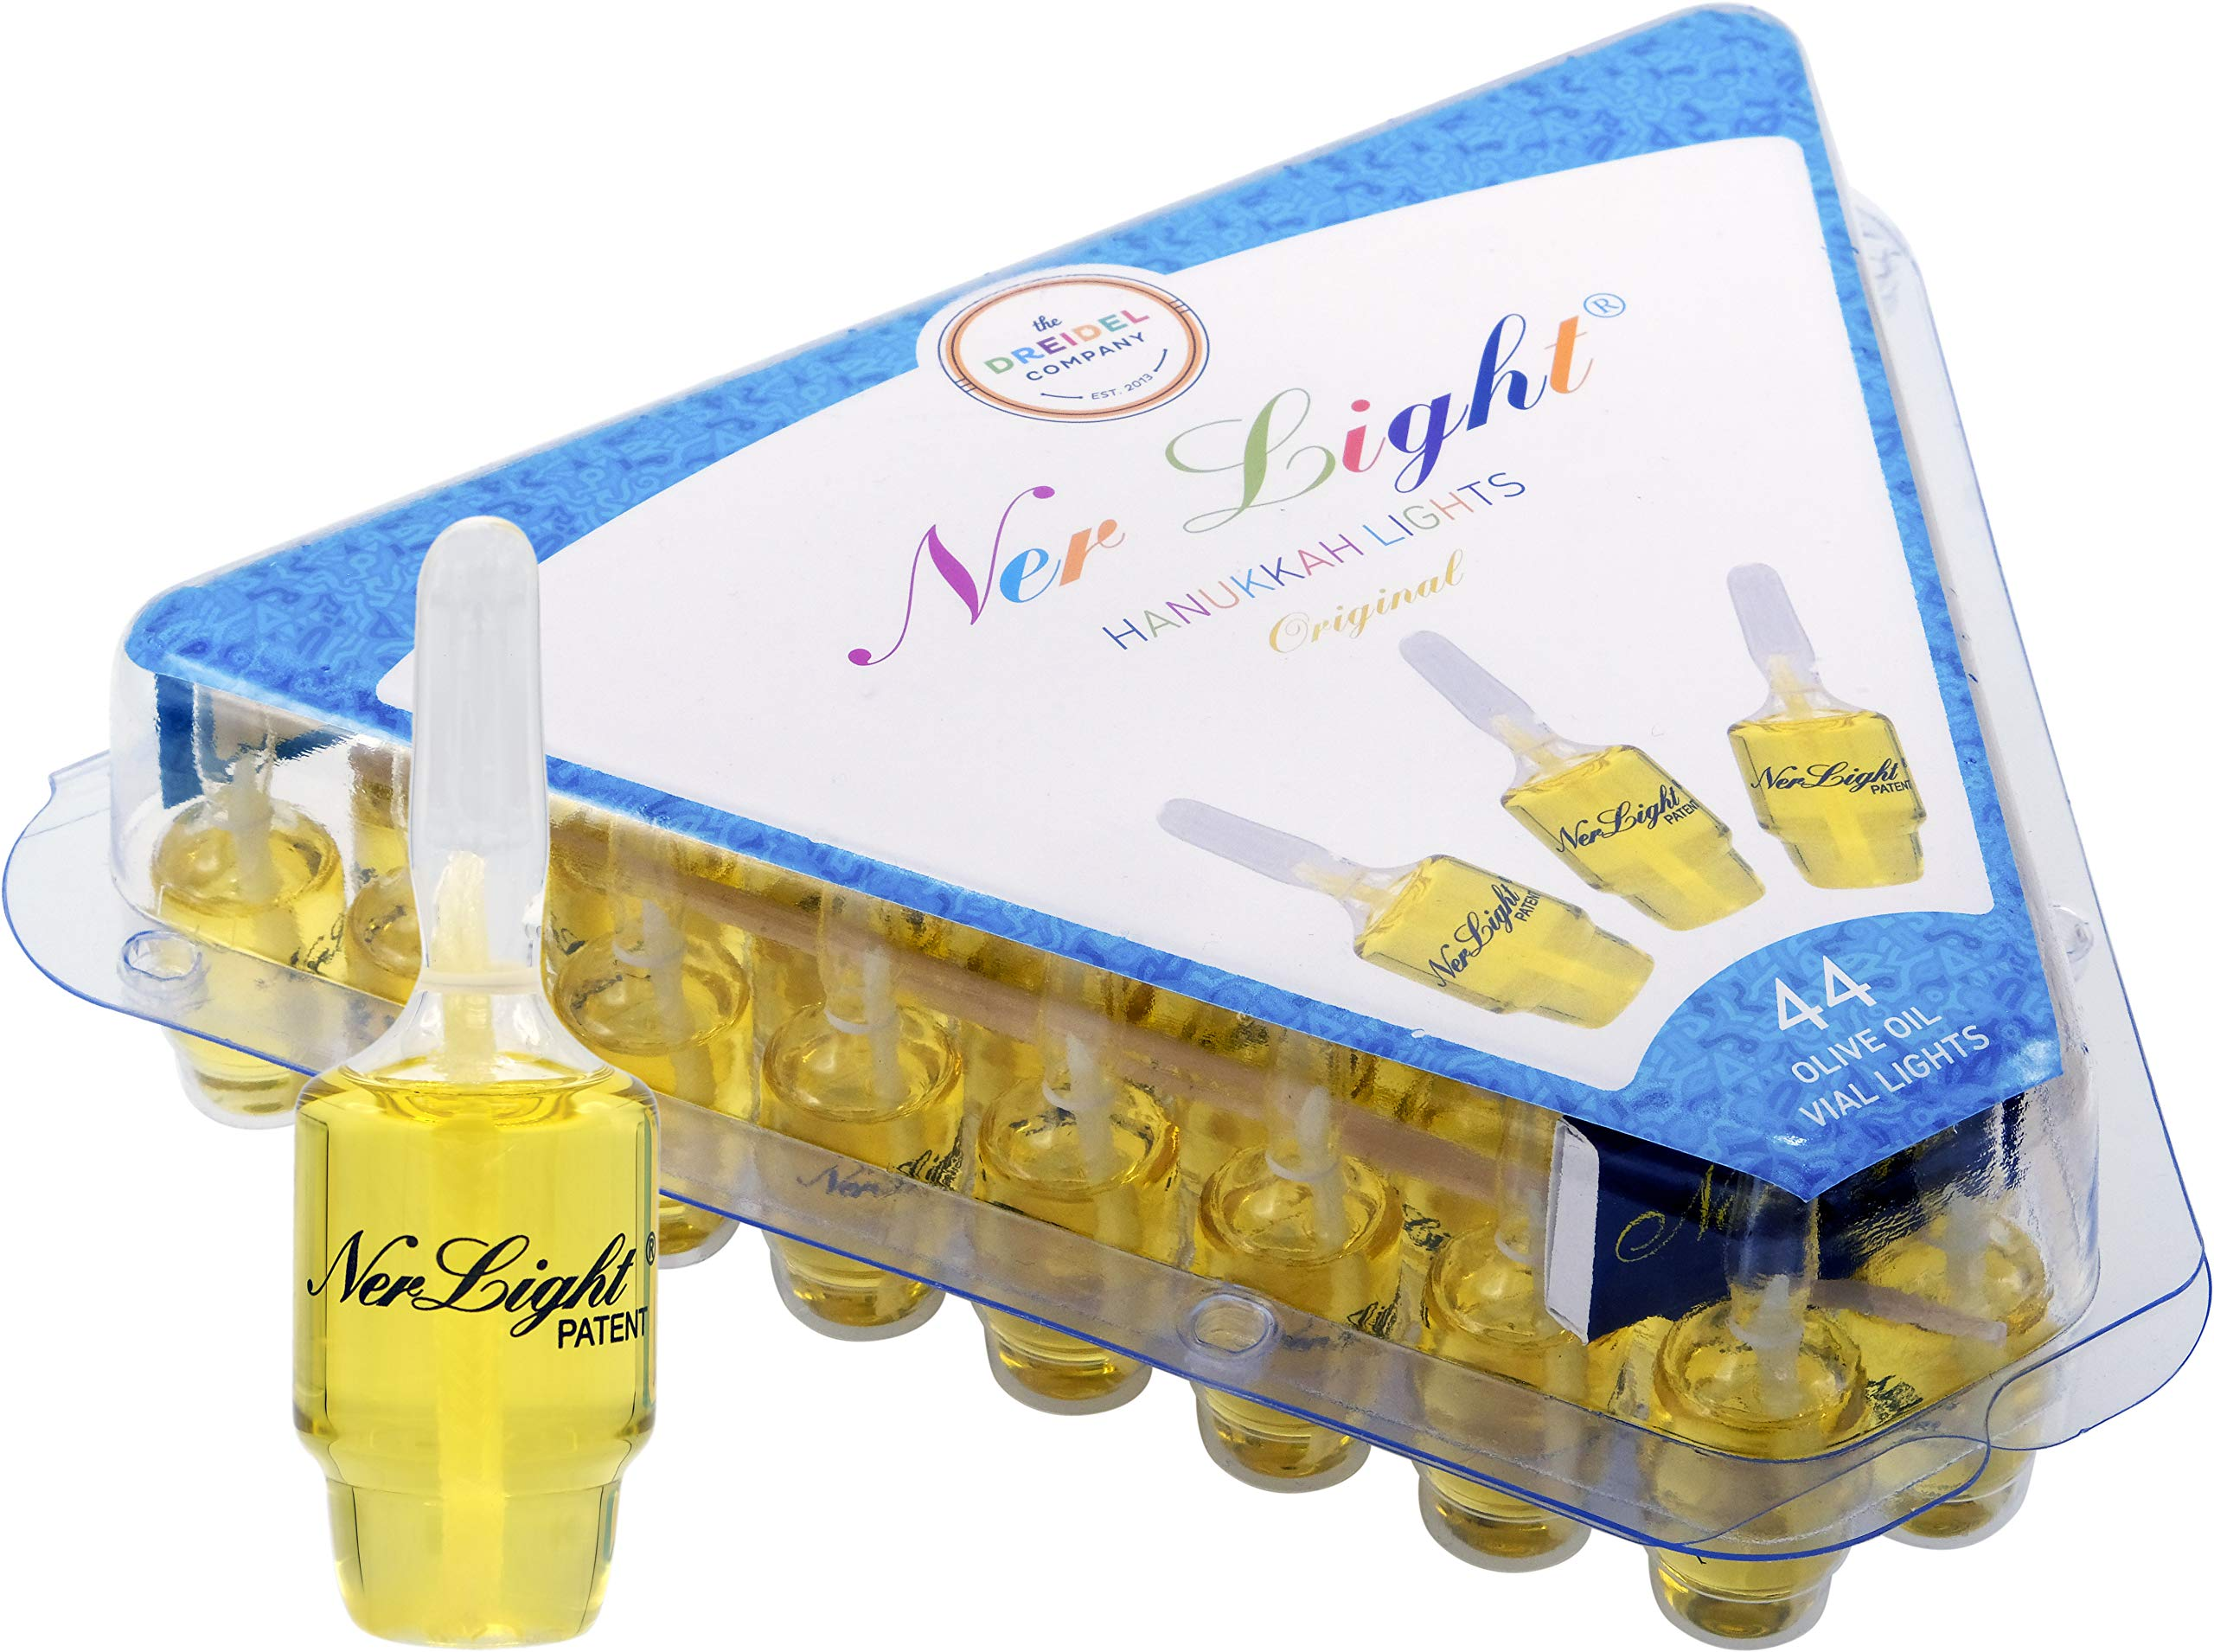 Pre-Filled Oil Hanukkah Menorah Oil Glass Cup Candles Ner Light Chanukah Oil Cups 44 Original 100 Percent  Olive Oil Cups